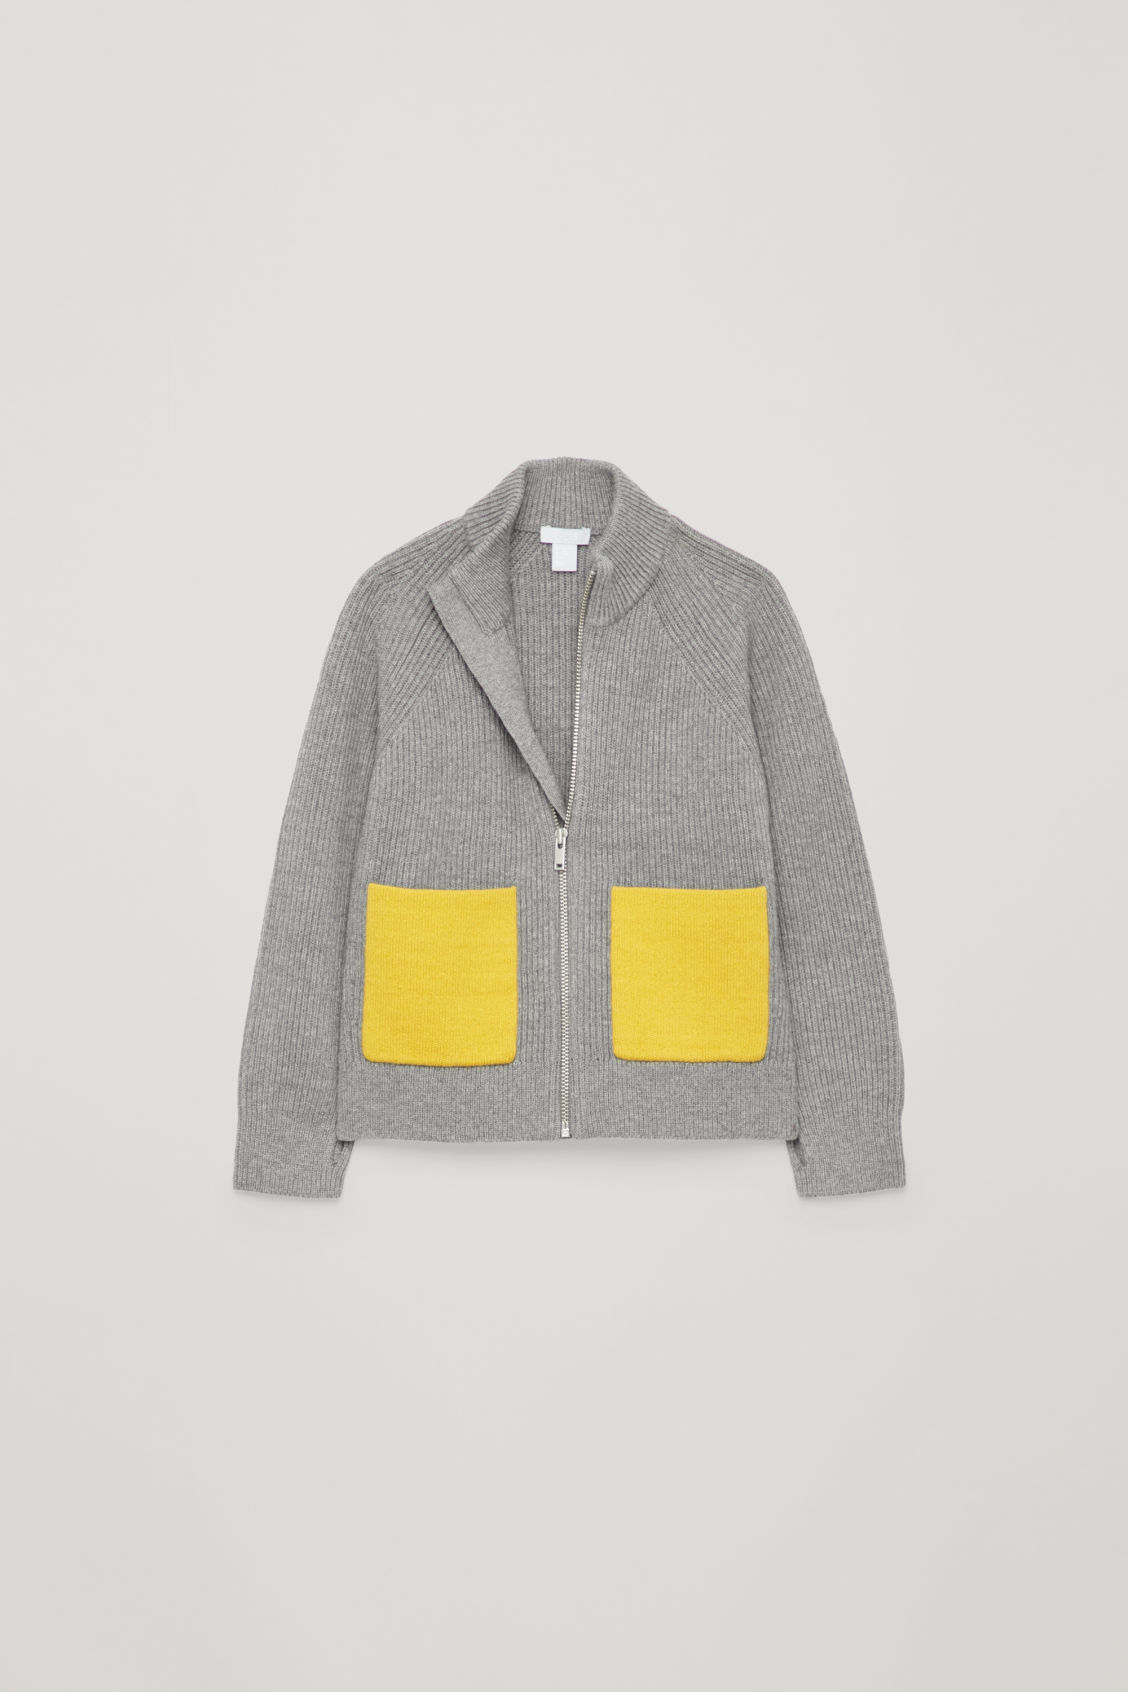 Detailed image of Cos  in grey